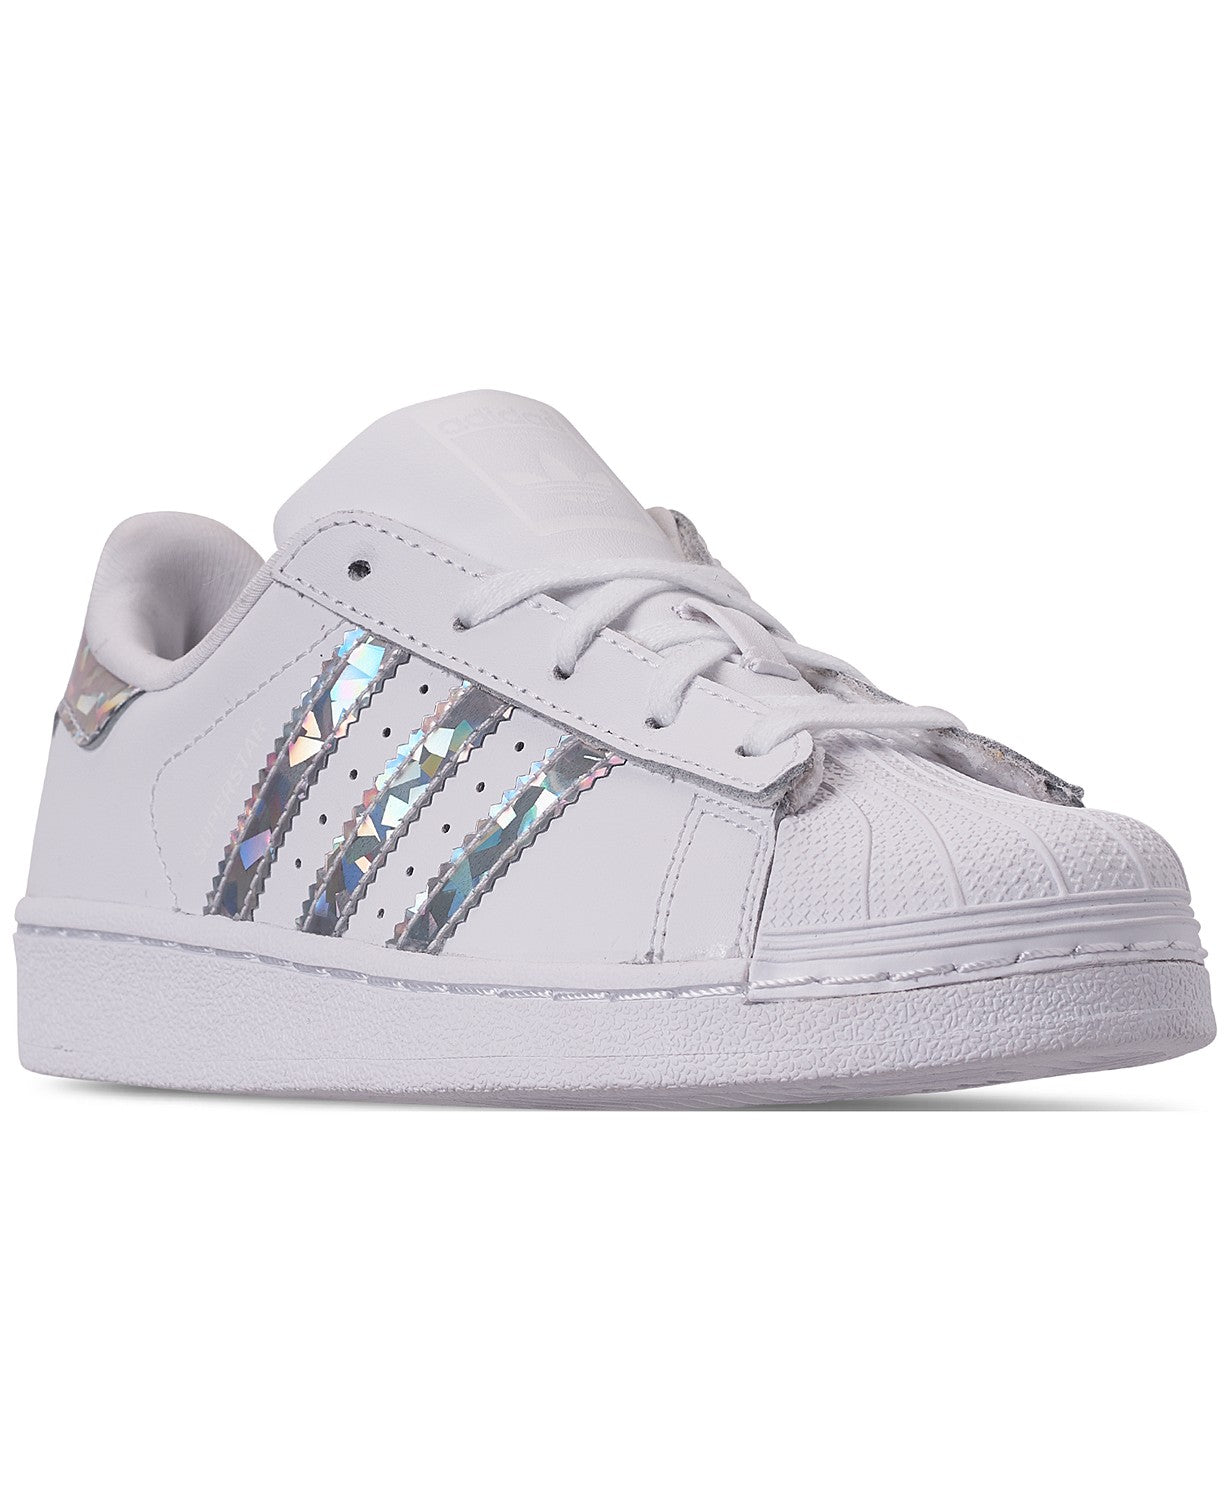 NWT Adidas CG6708 Superstar Preschool White Low Top Sneakers Size 12K